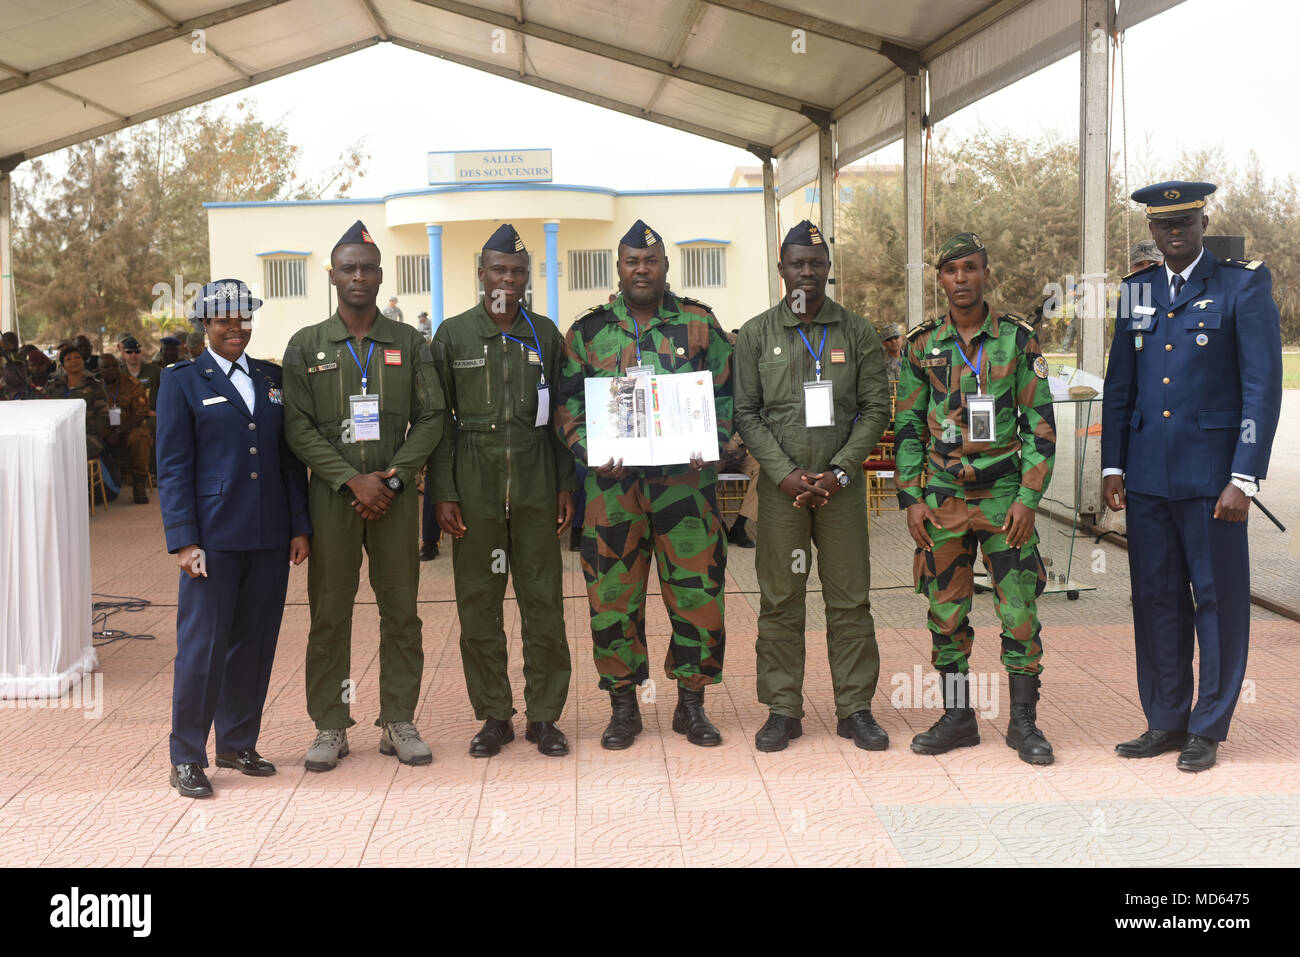 African Partnership Flight participants from Côte d'Ivoire pose for a photo after the closing ceremony for APF at Captain Andalla Cissé Air Base, Senegal, March 23, 2018. The purpose of APF Senegal is to conduct multilateral, military-to-military engagements and security assistance with African air forces. (U.S. Air Force photo by Airman 1st Class Eli Chevalier)  (U.S. Air Force photo by Airman 1st Class Eli Chevalier) - Stock Image